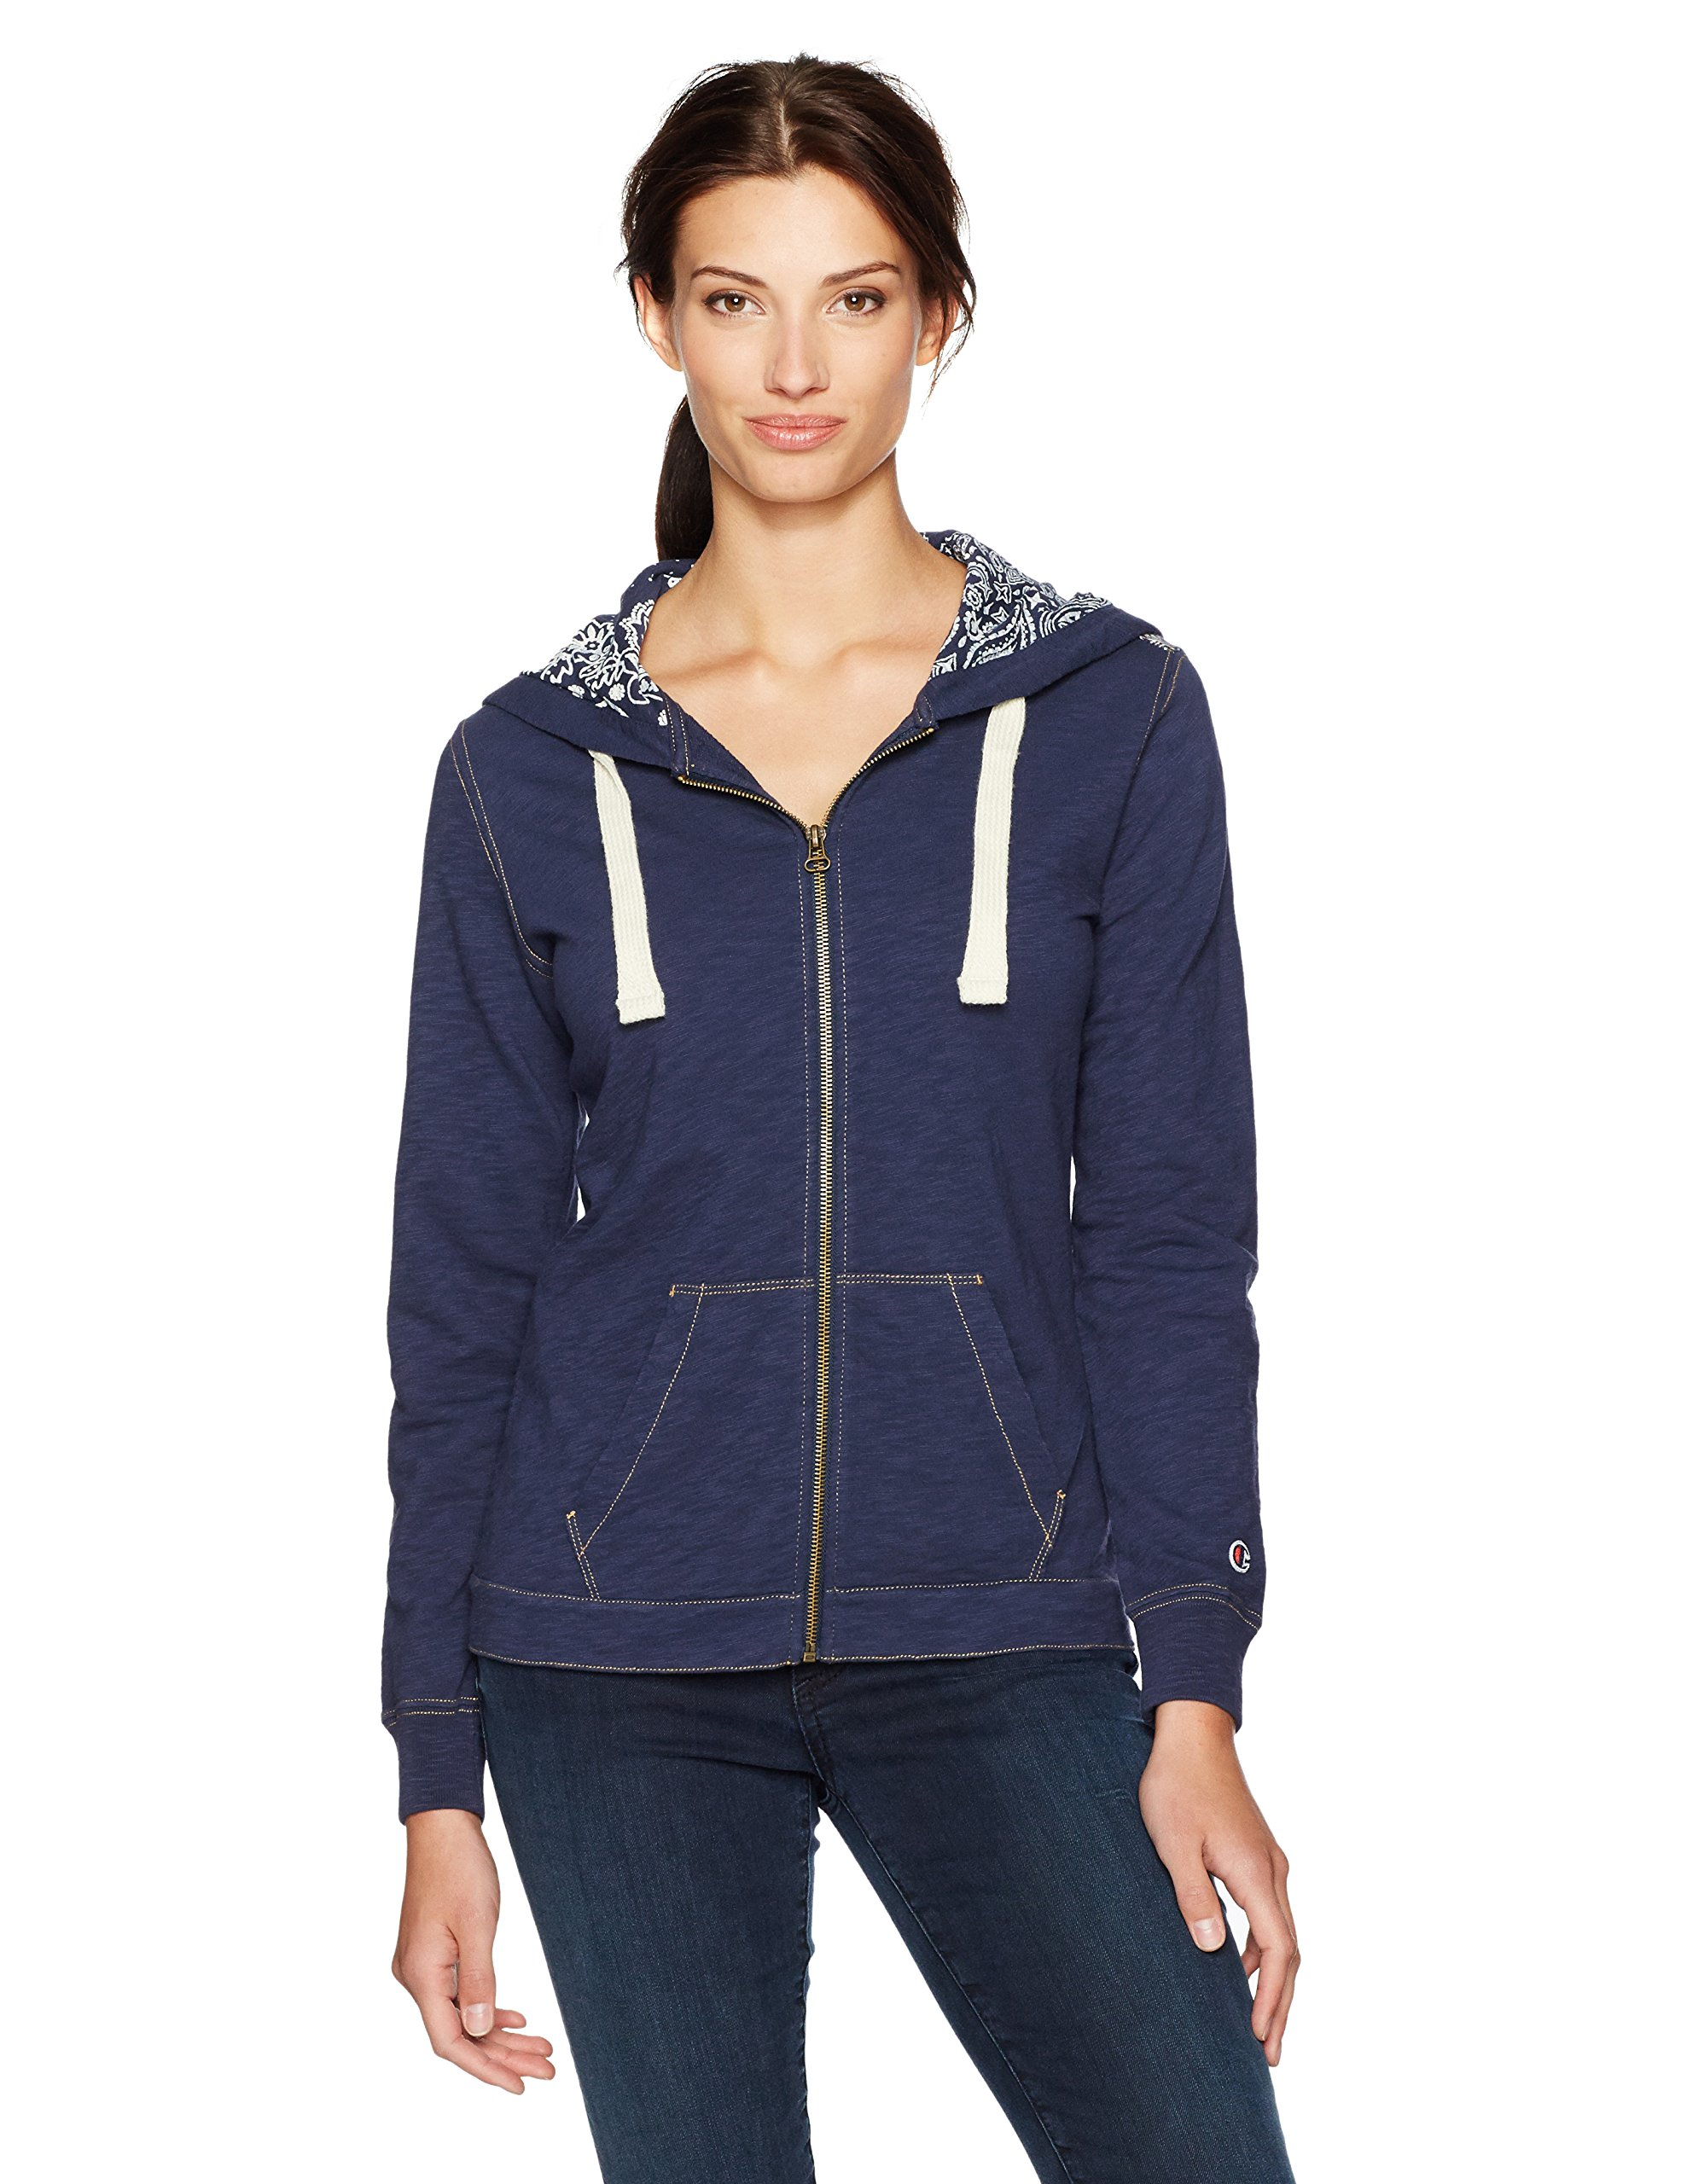 Champion Women's French Terry Full Zip Hoodie (Edition), Navy, S by Champion